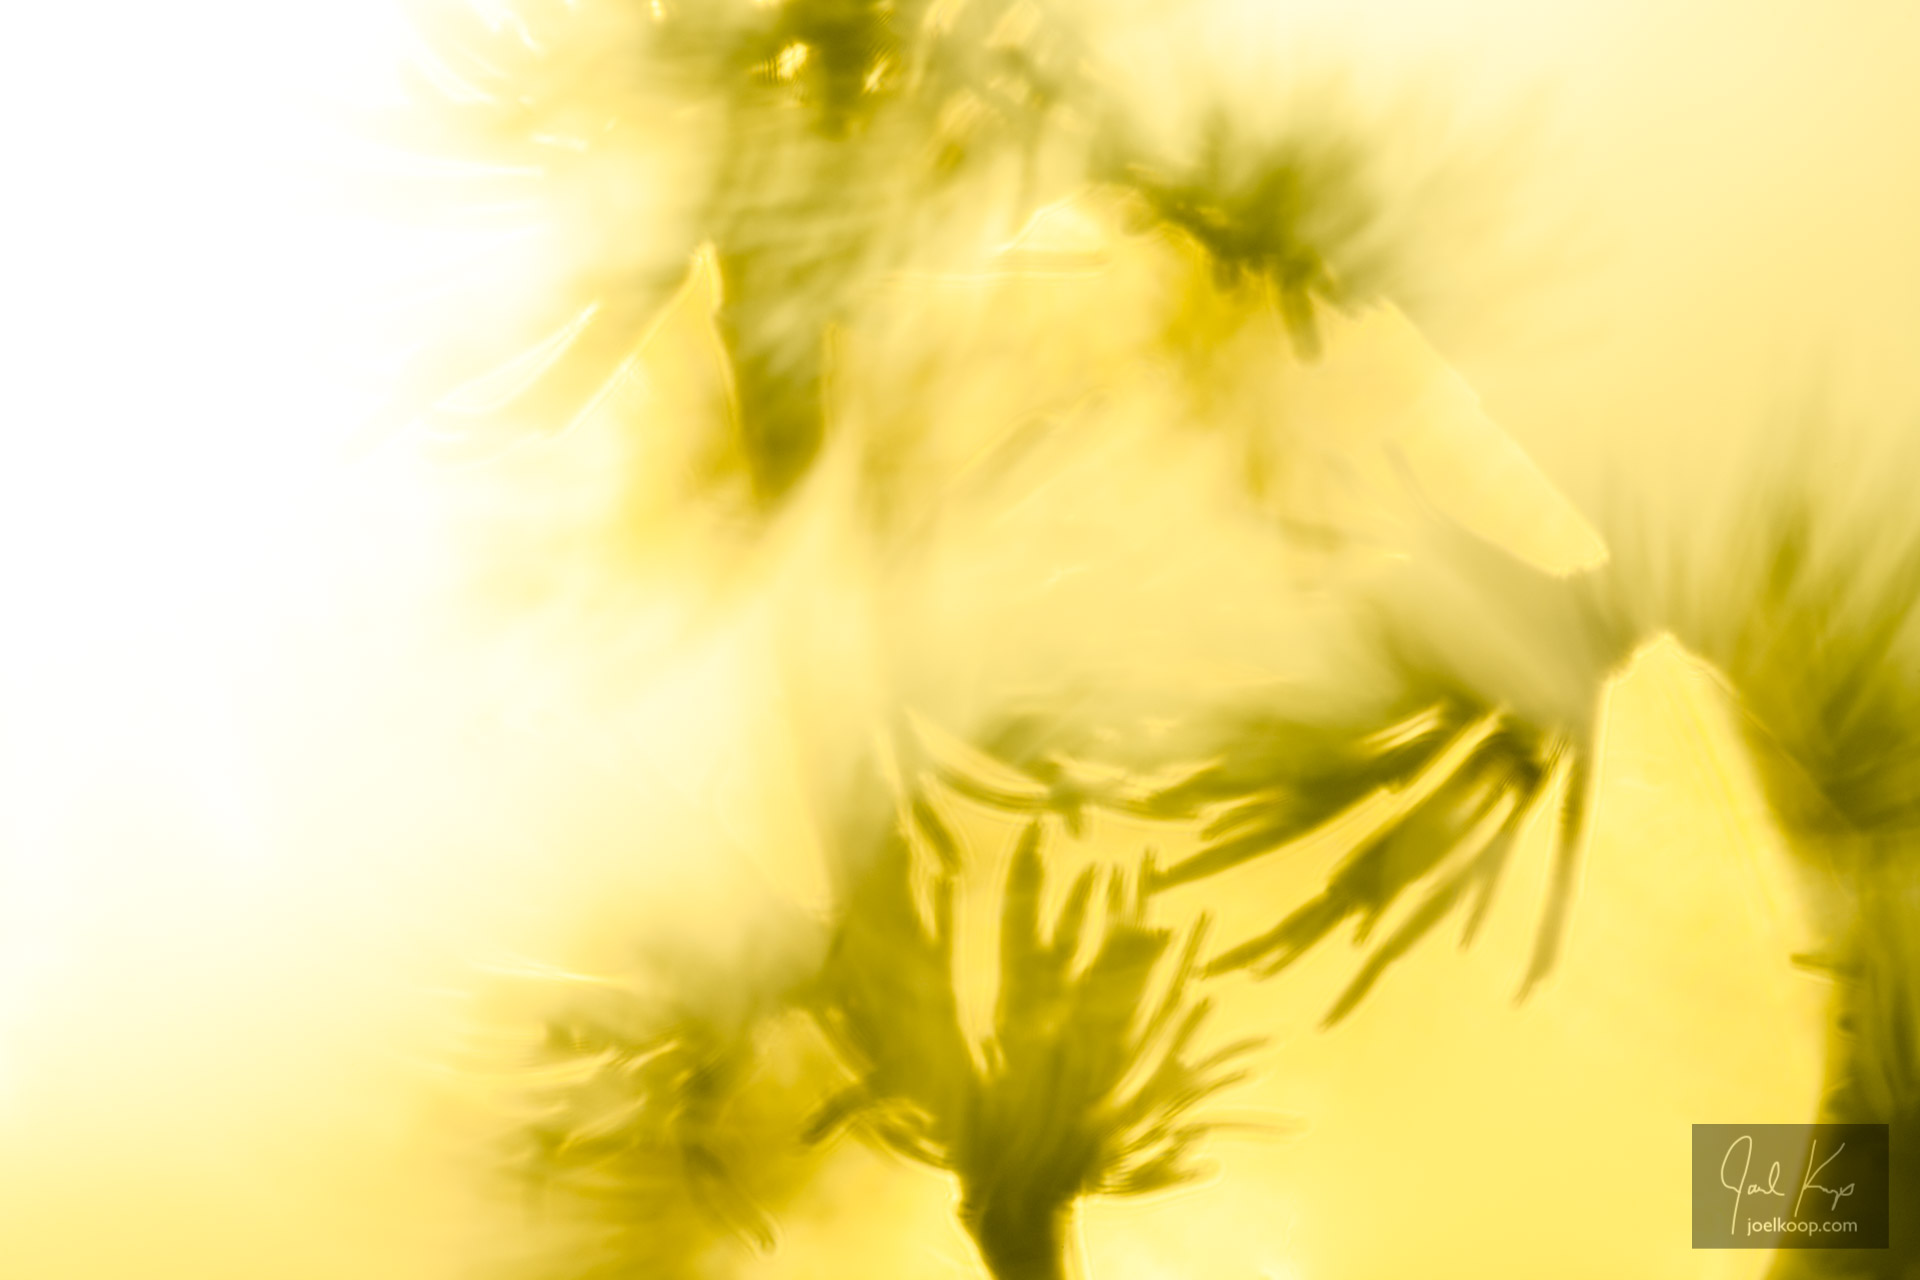 Into the Sun: Tamarack Needles